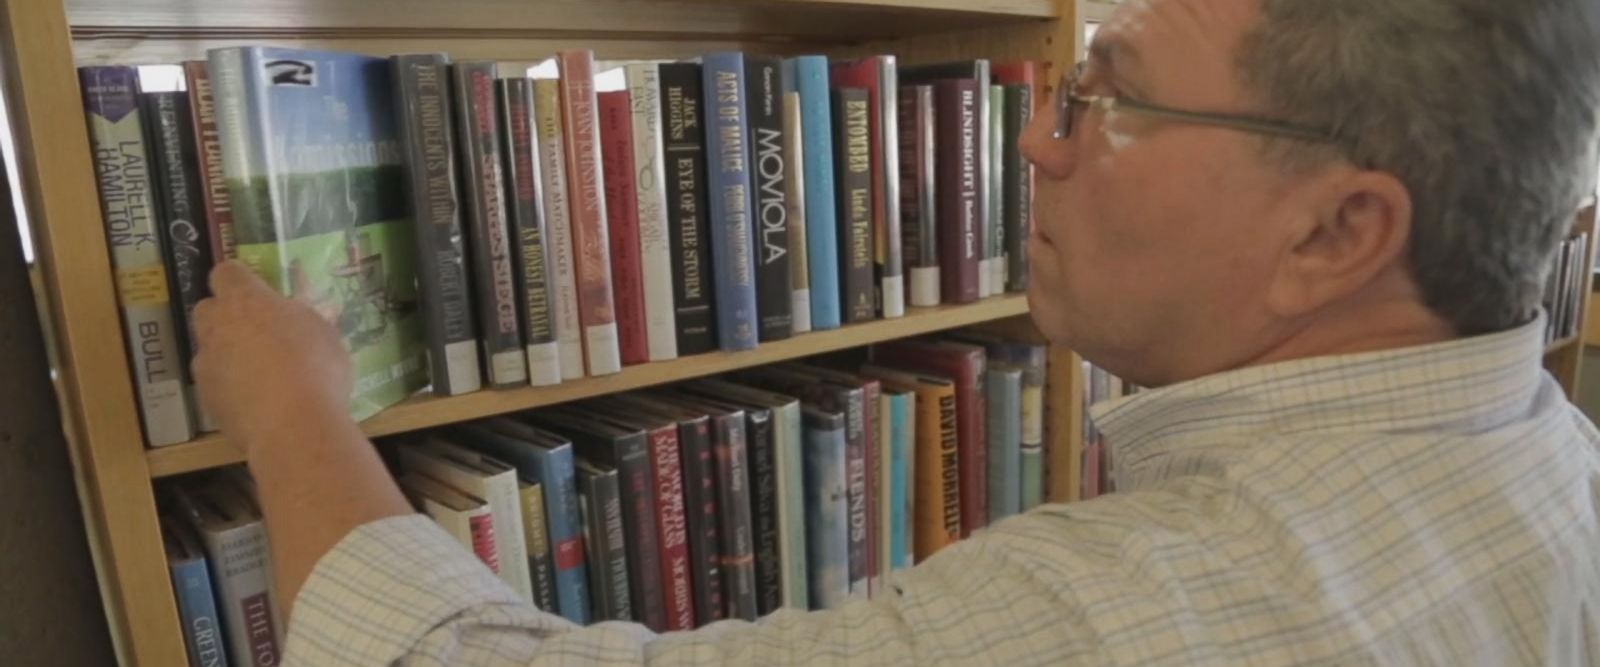 VIDEO: National Reading Day: Man learns to read at age 47